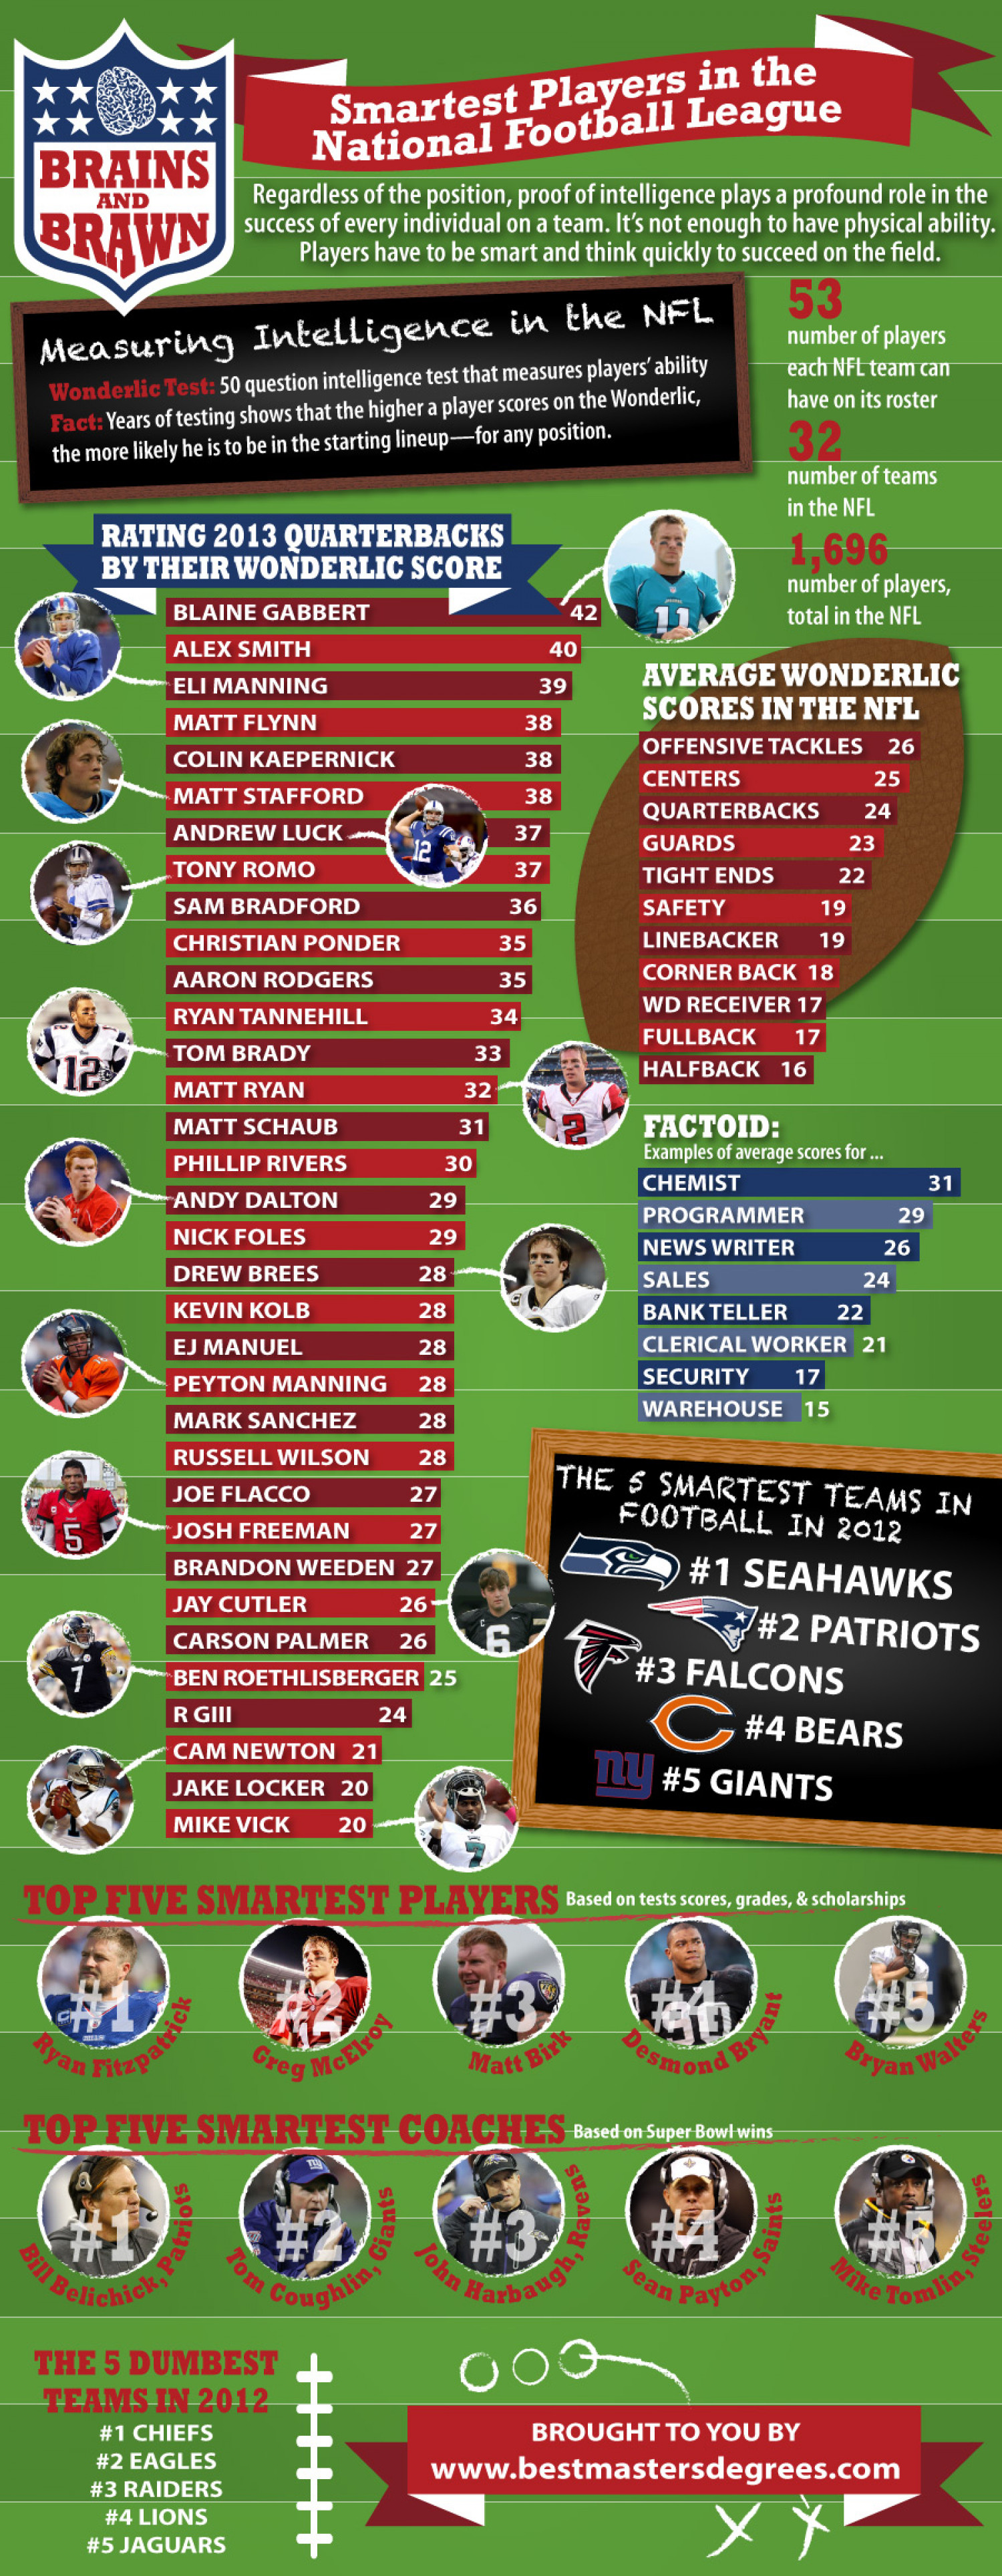 Brains and Brawn: Smartest Players in the NFL Infographic